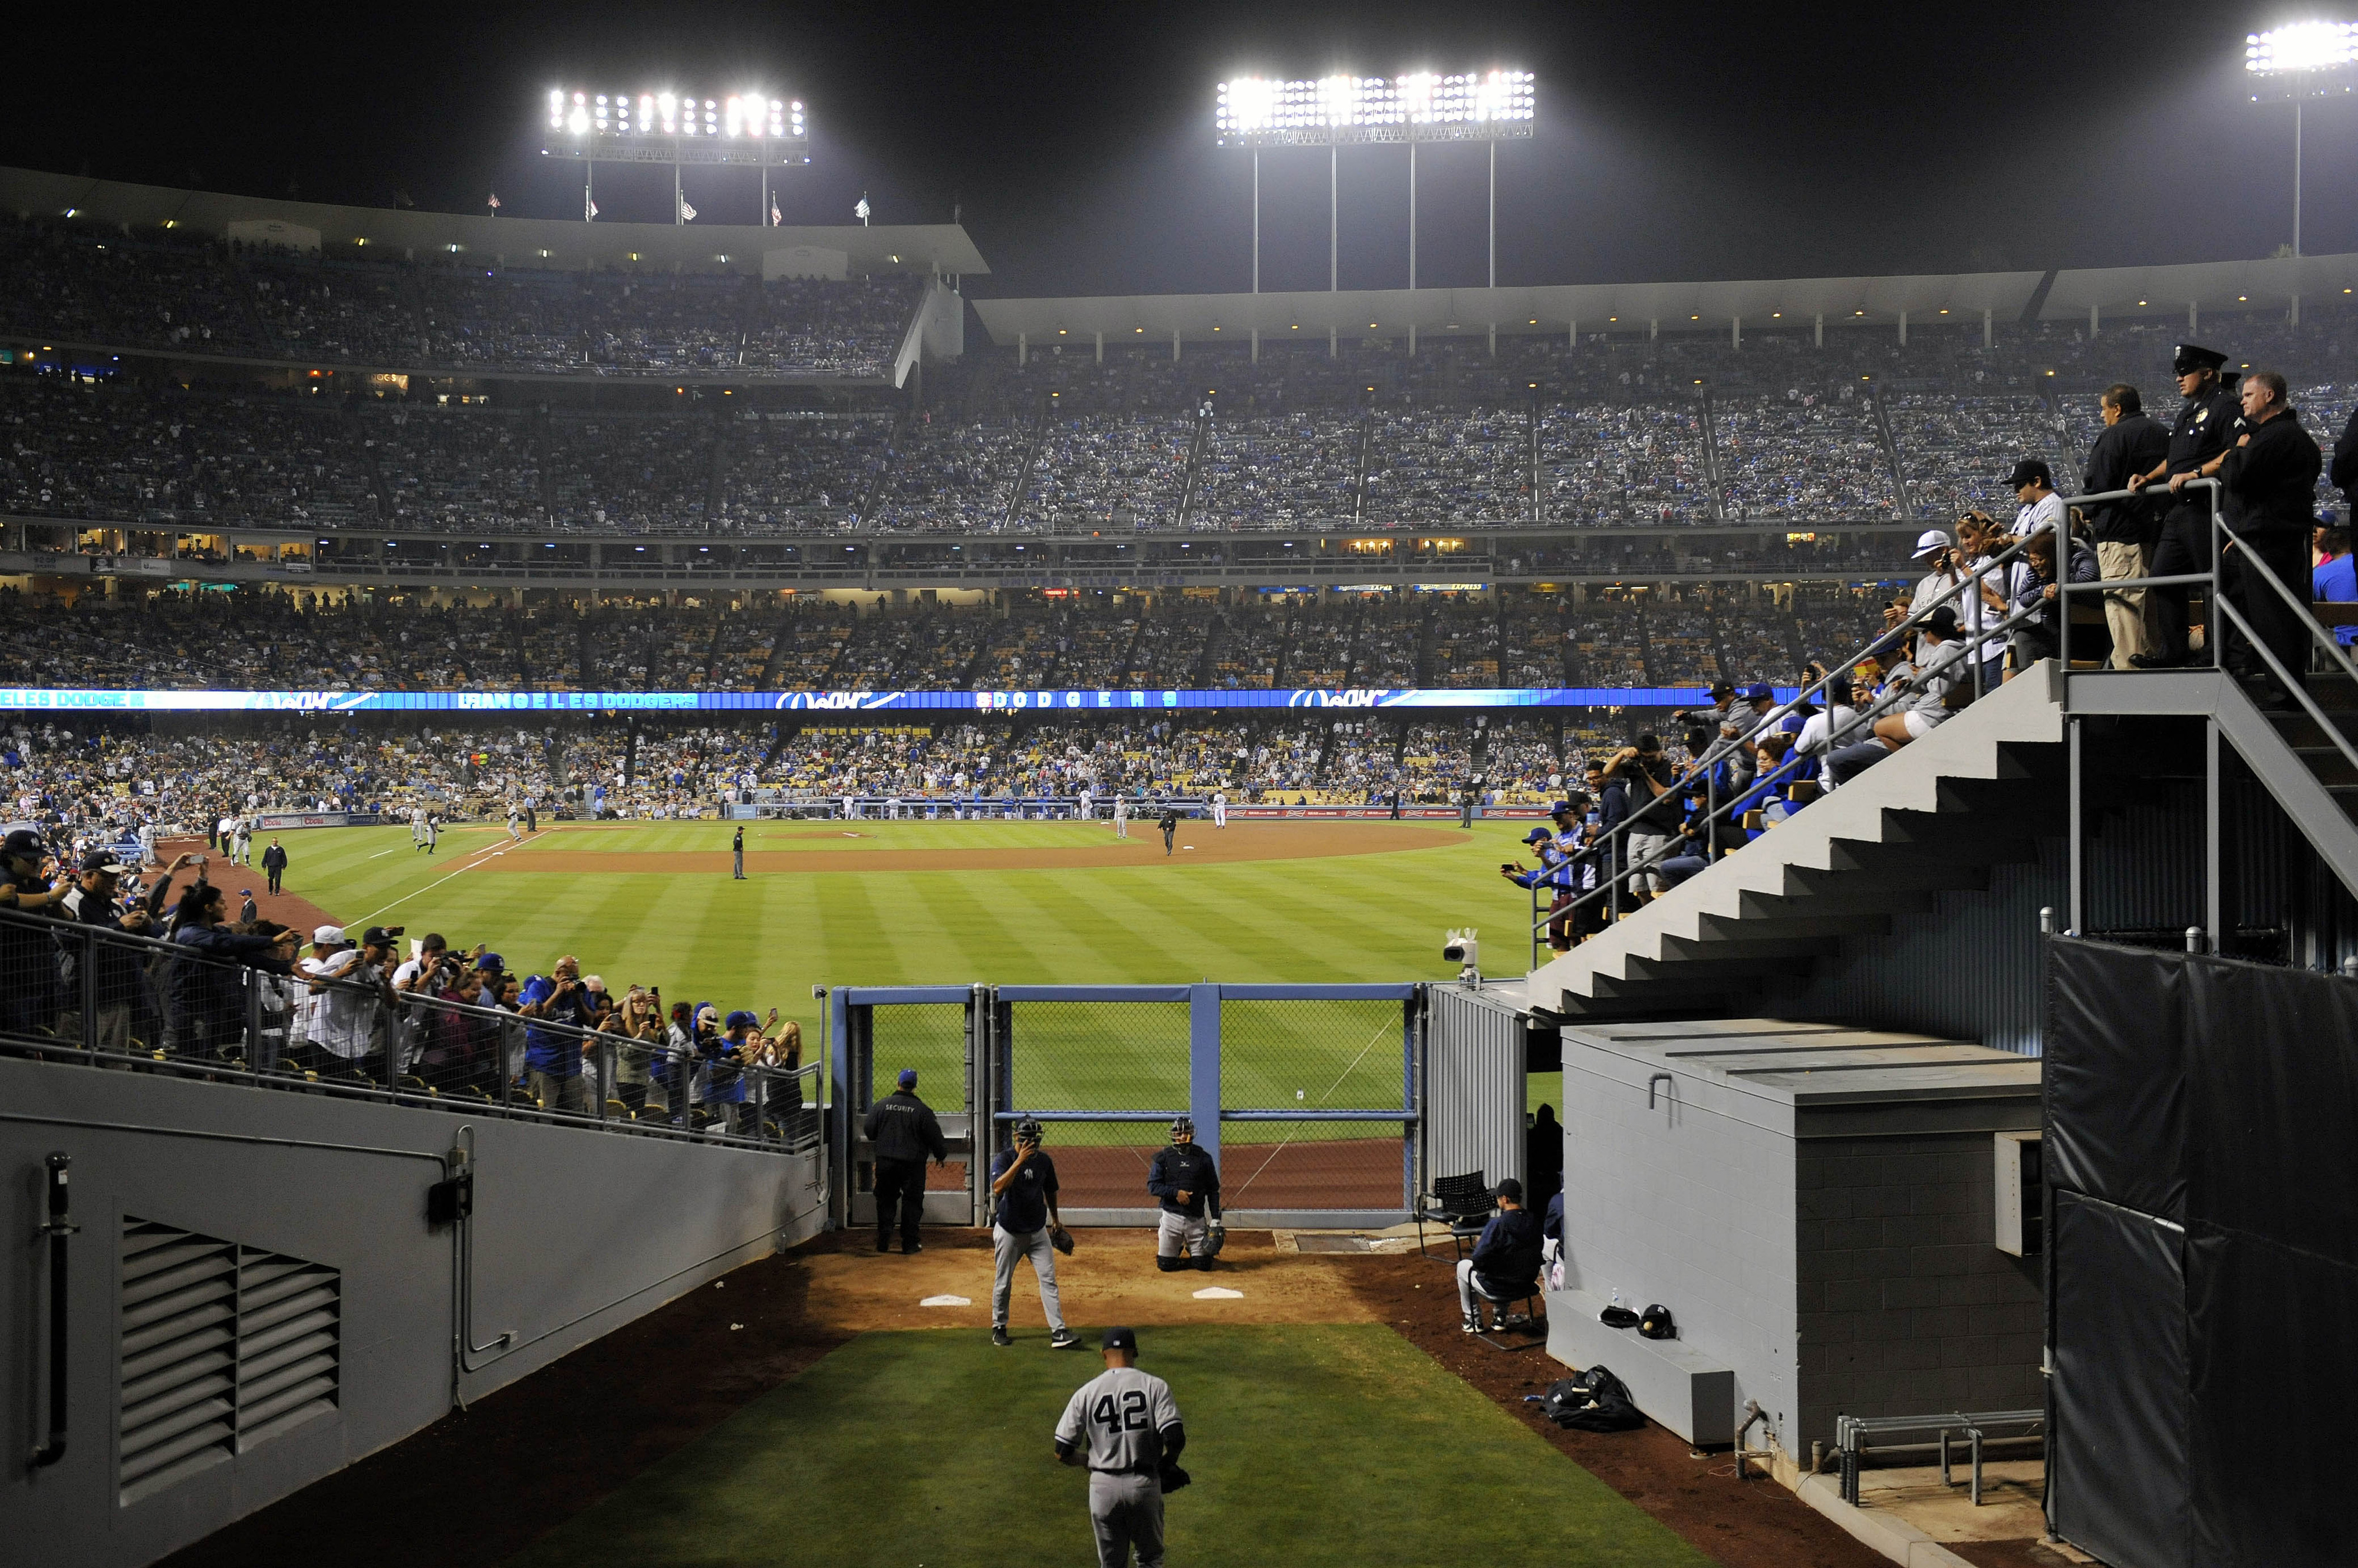 Mariano Rivera Gets The Call In Dodgers Stadium